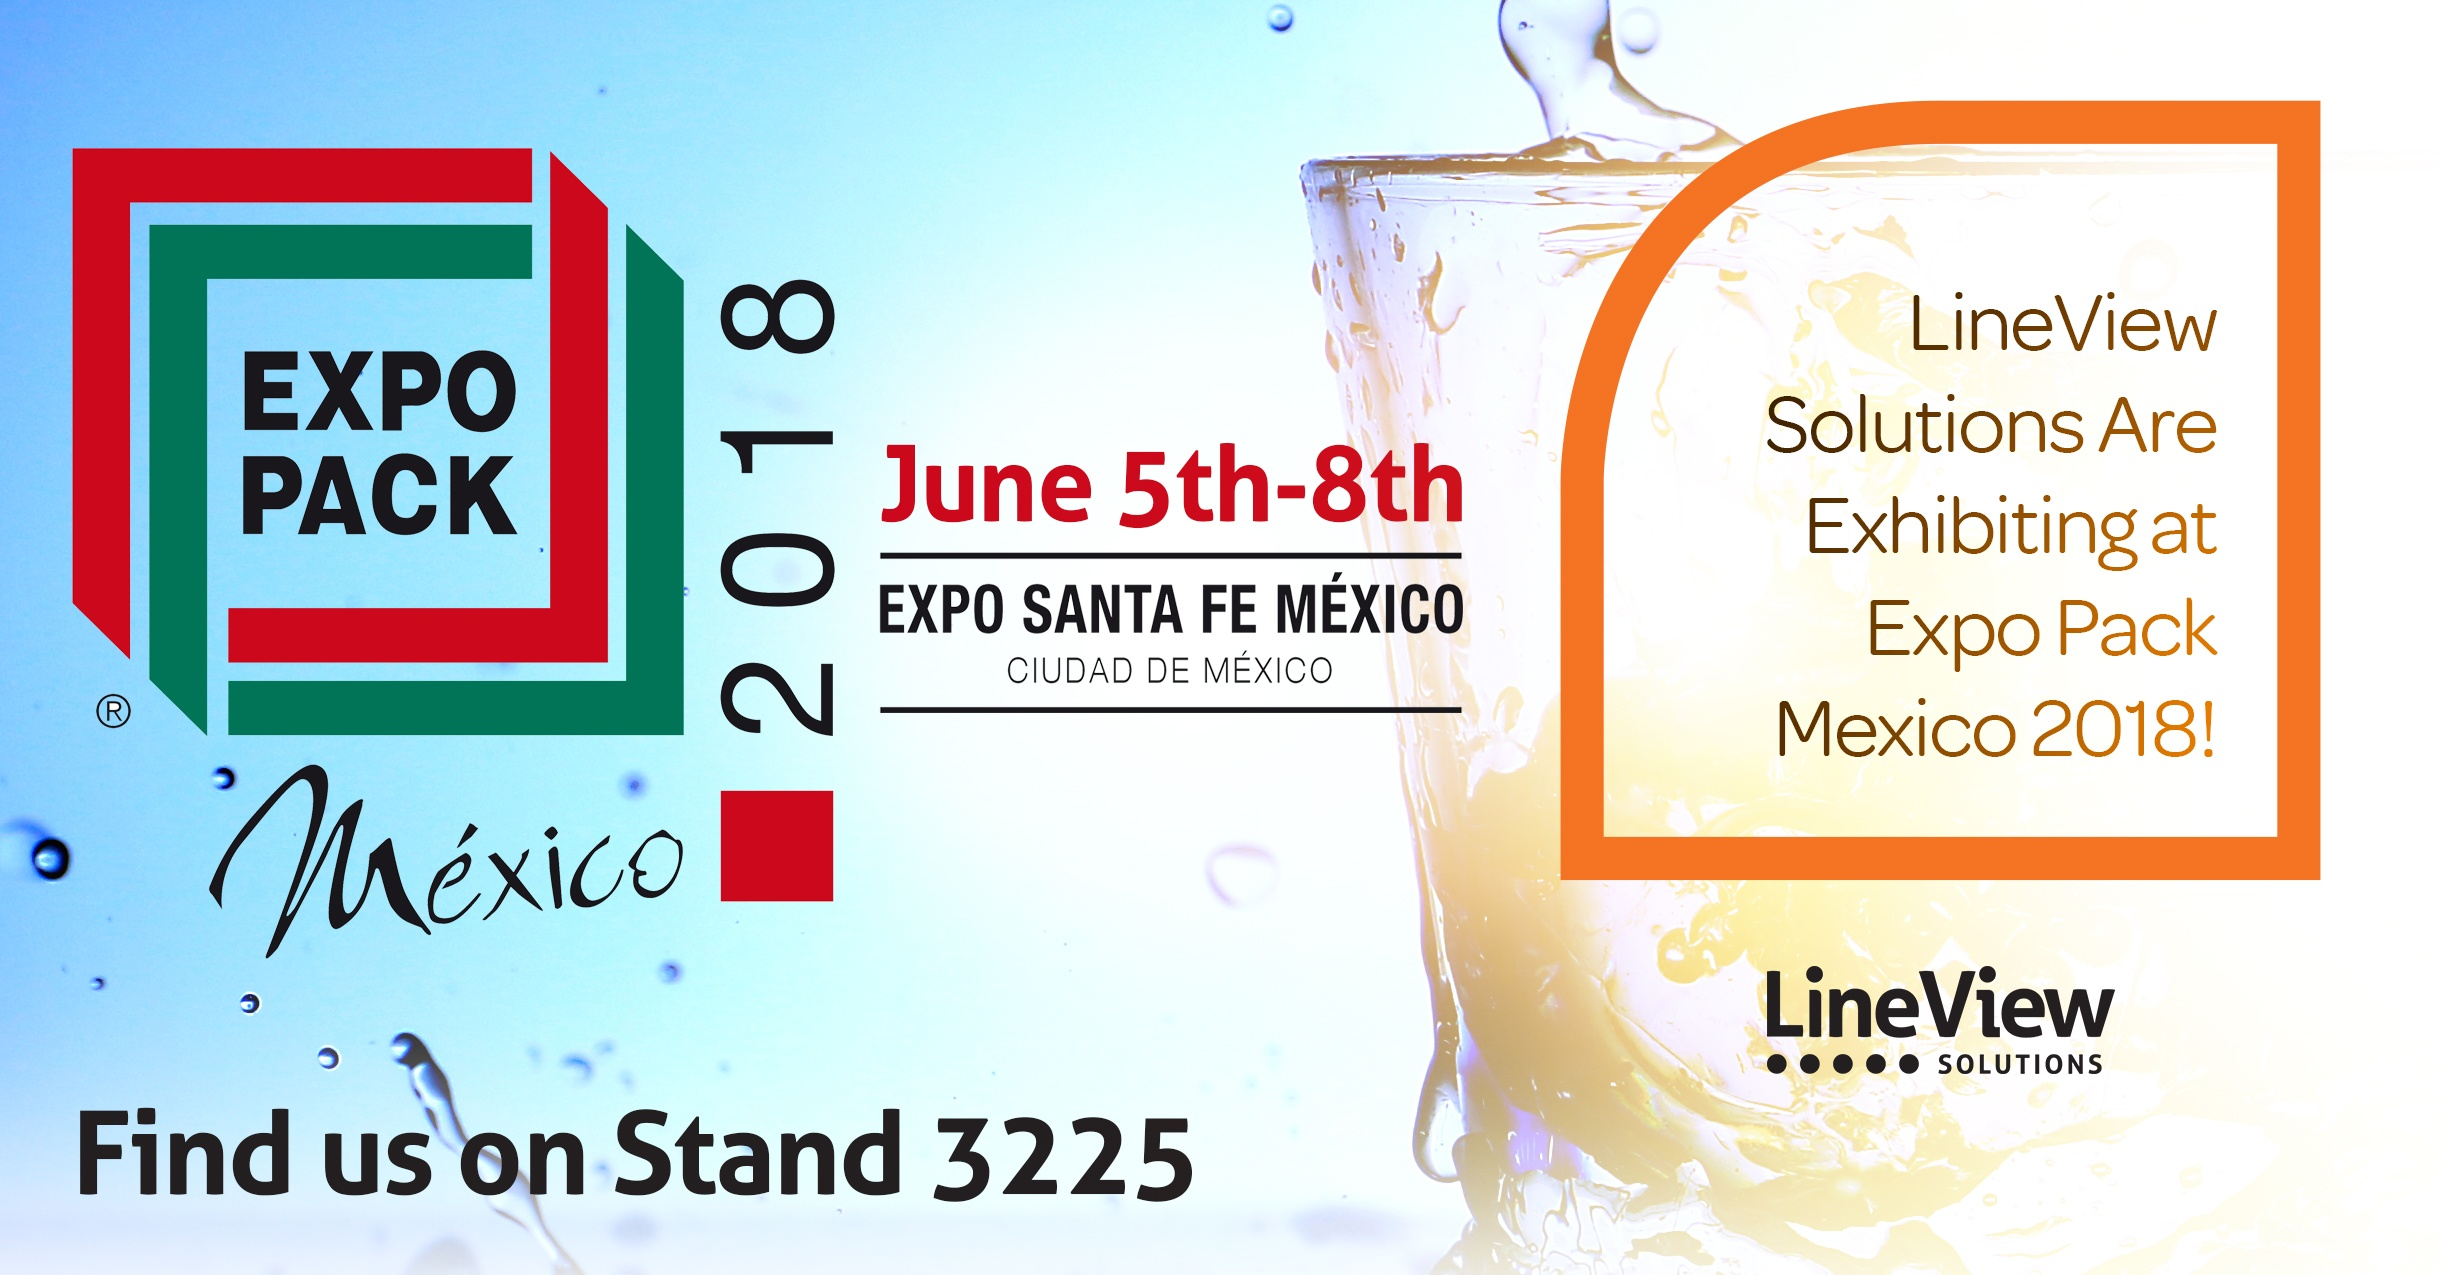 LVS - Expo Pack - Mexico 2018 (Web Banner)